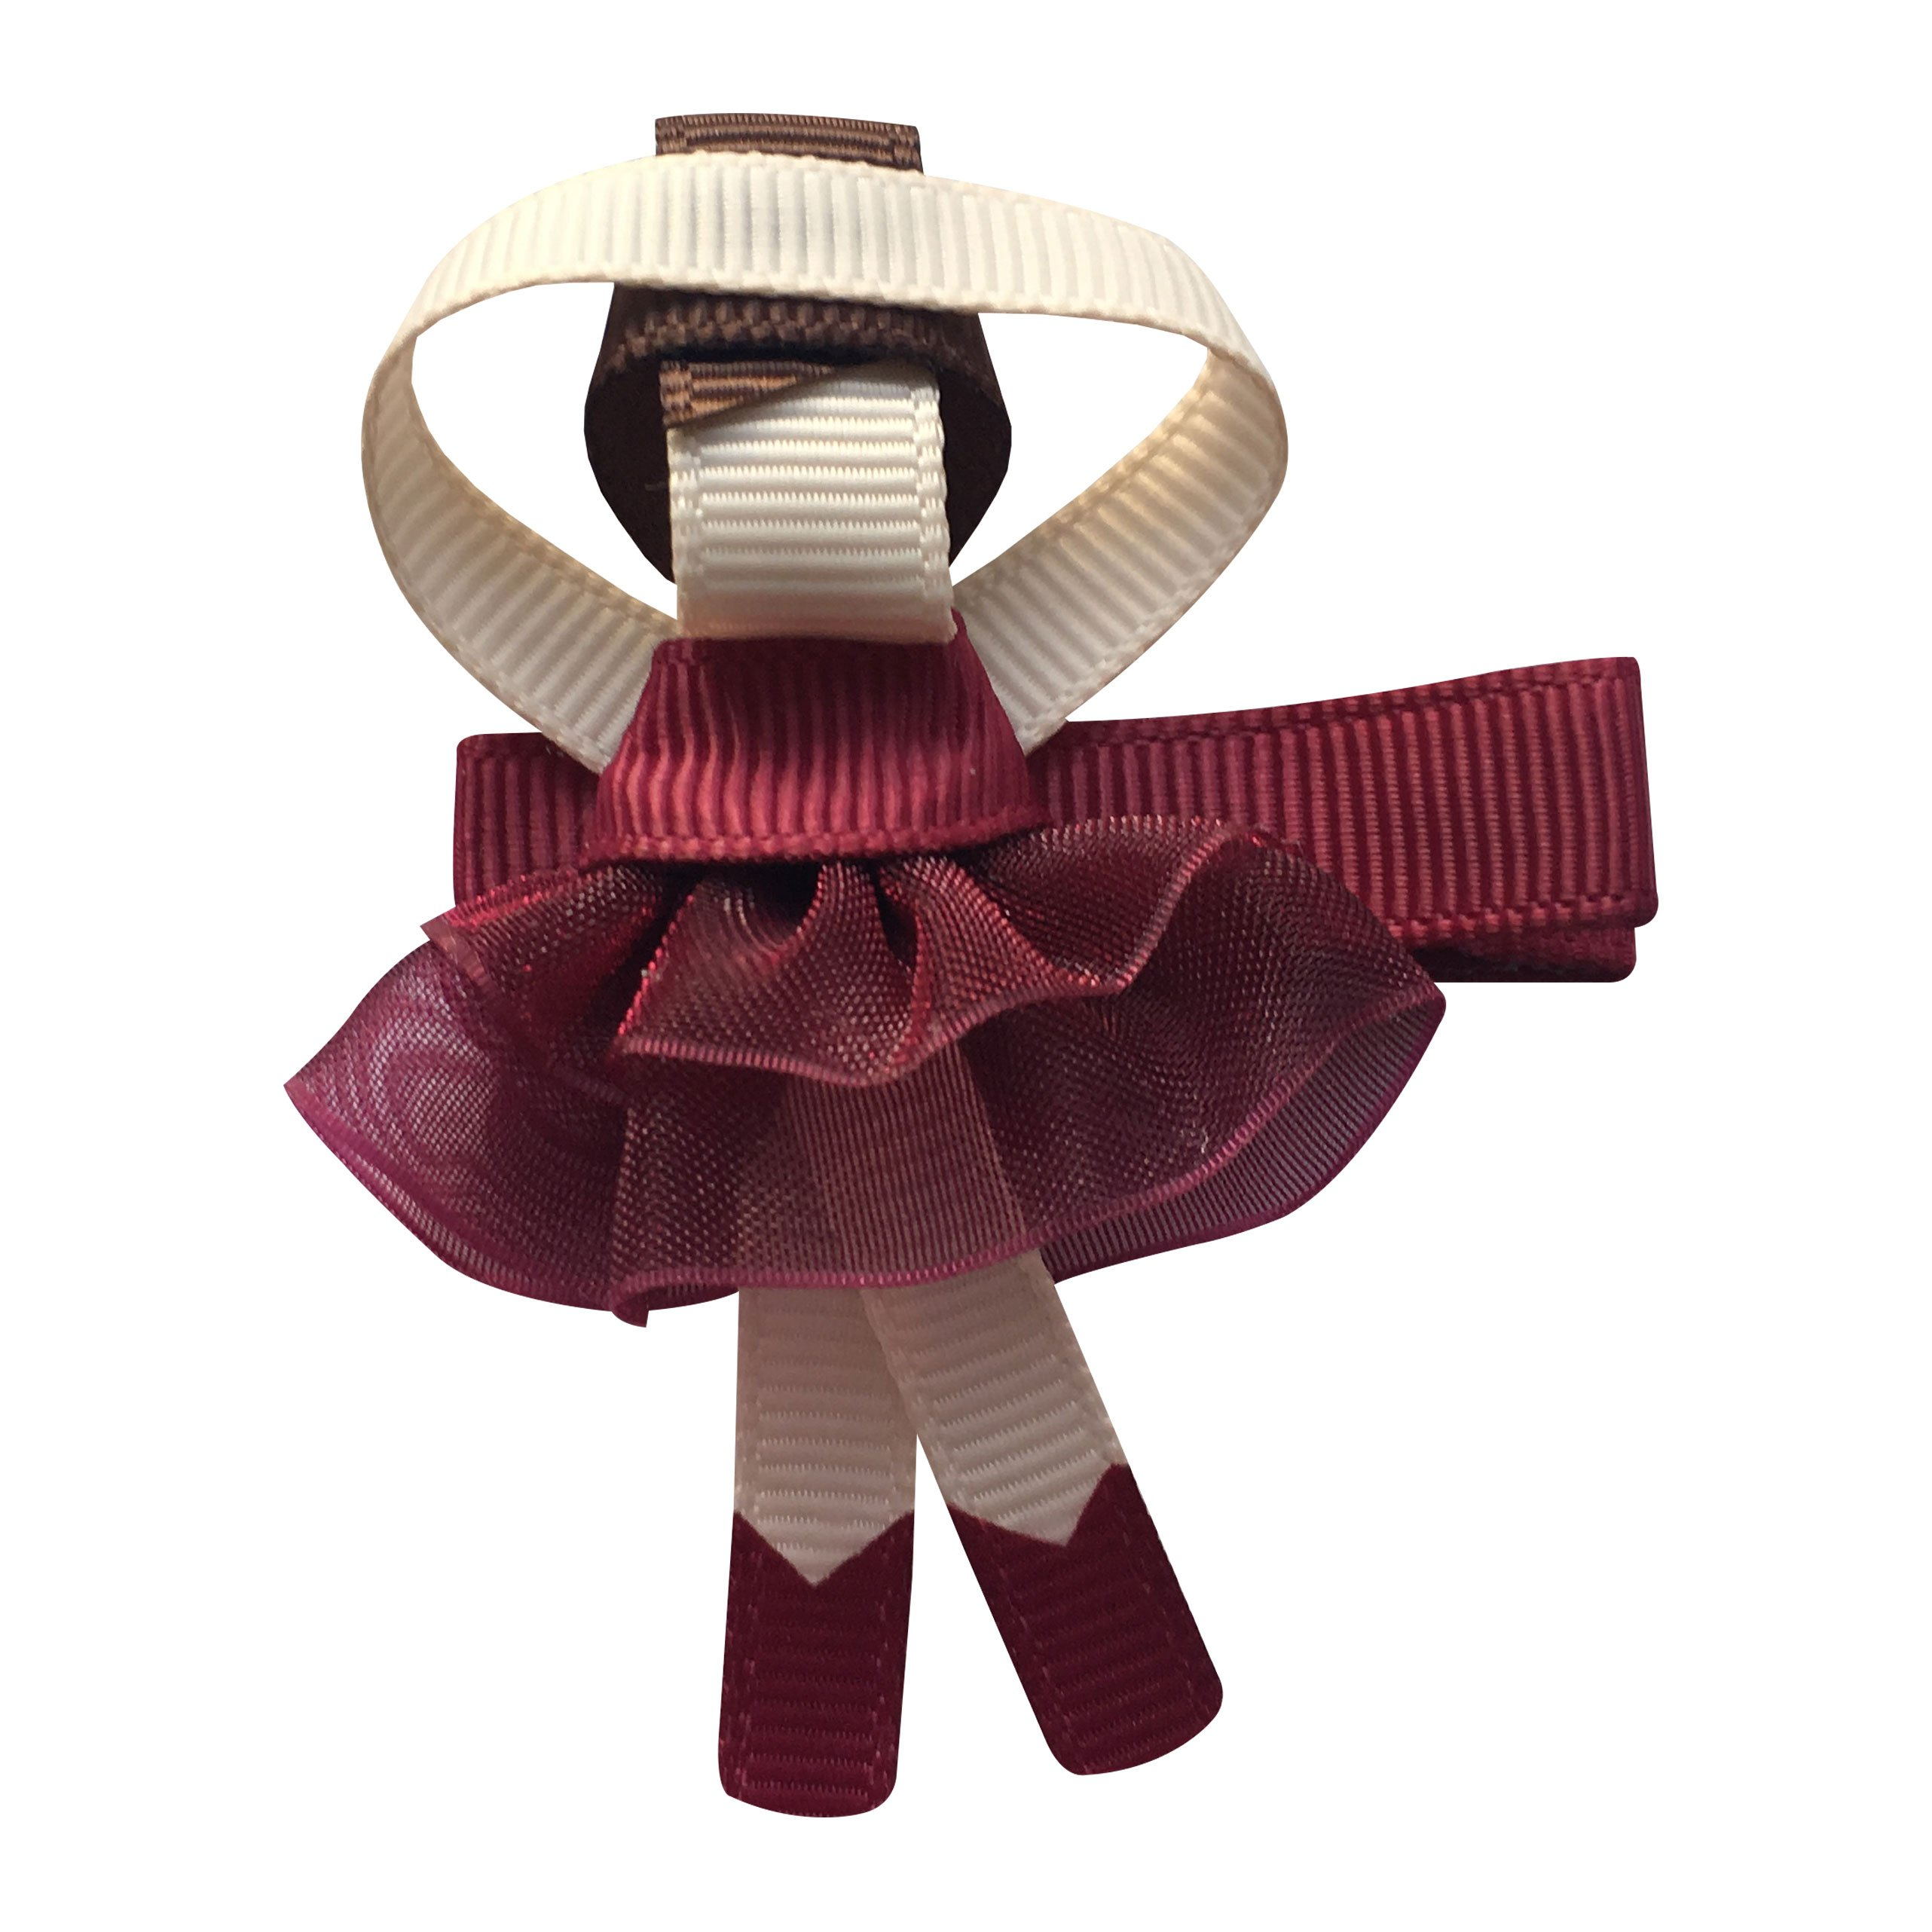 Image of Milledeux Ballerina - alligator clip - Wine